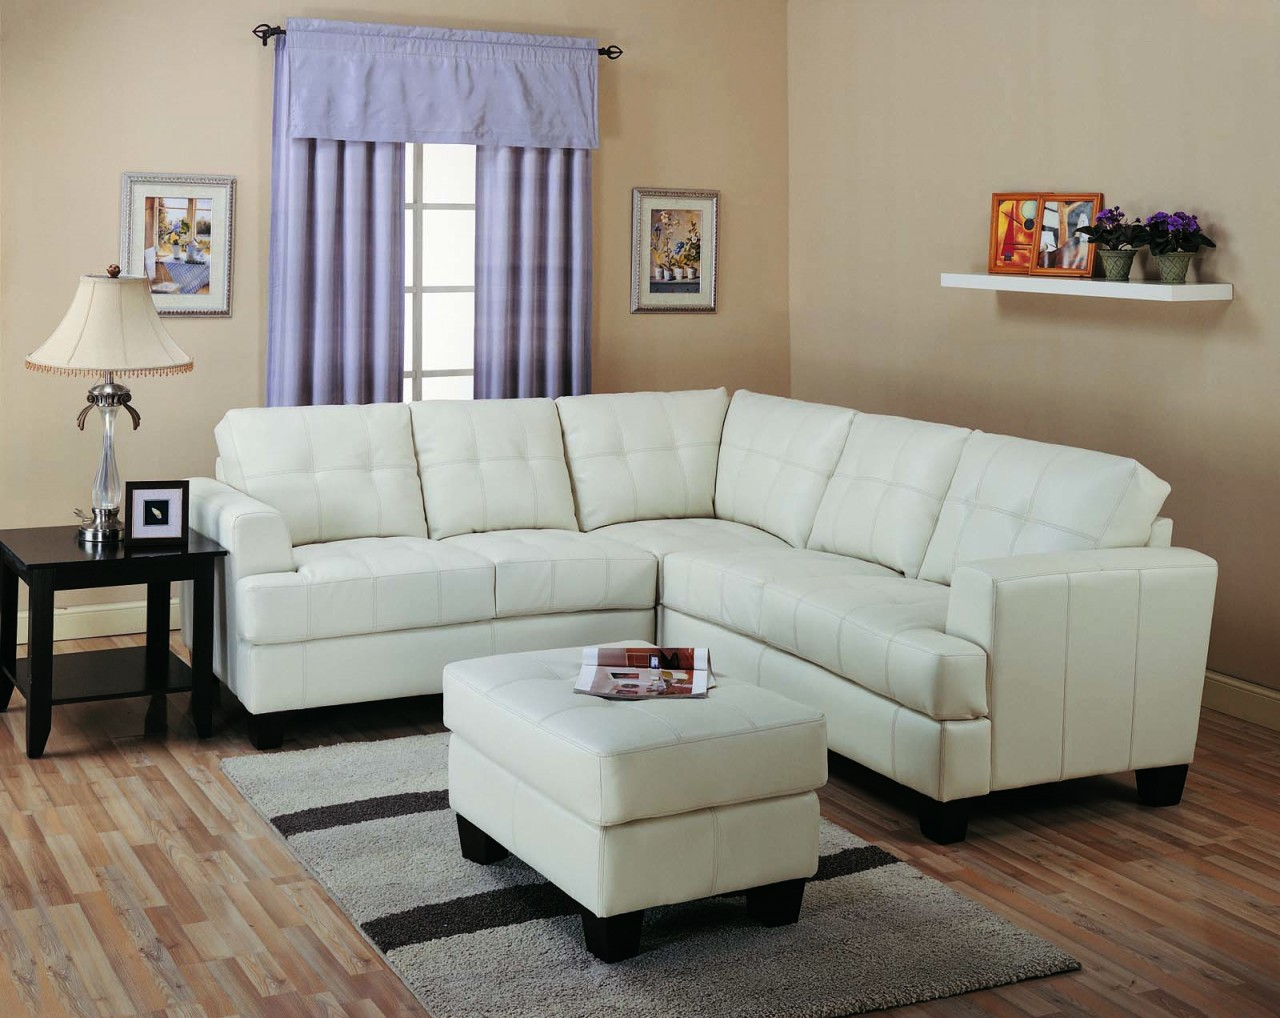 Slim Sectional Sofa In White For Living Room A White Ottoman Furniture Small  Wool Area Rug